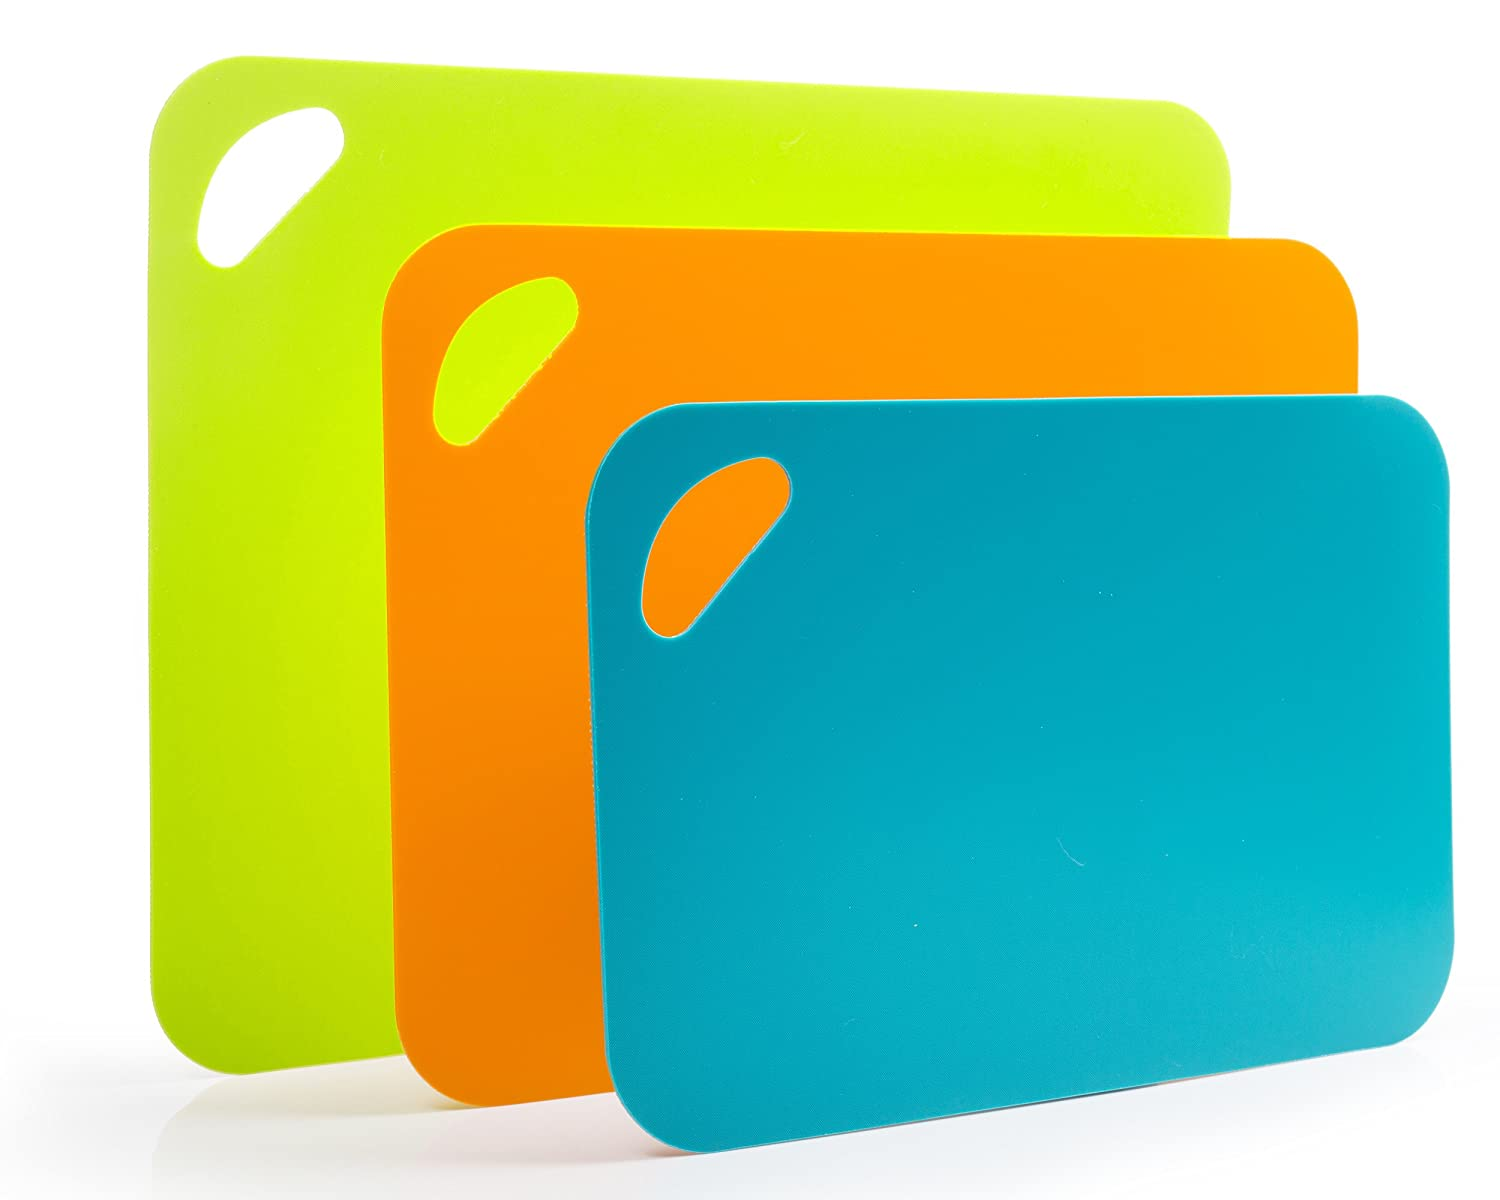 Flexible Cutting Board Mat Set, Extra Thick Plastic with Non-Slip Textured Grip for Chopping, 3 Convenient Sizes by DeVeau Essentials